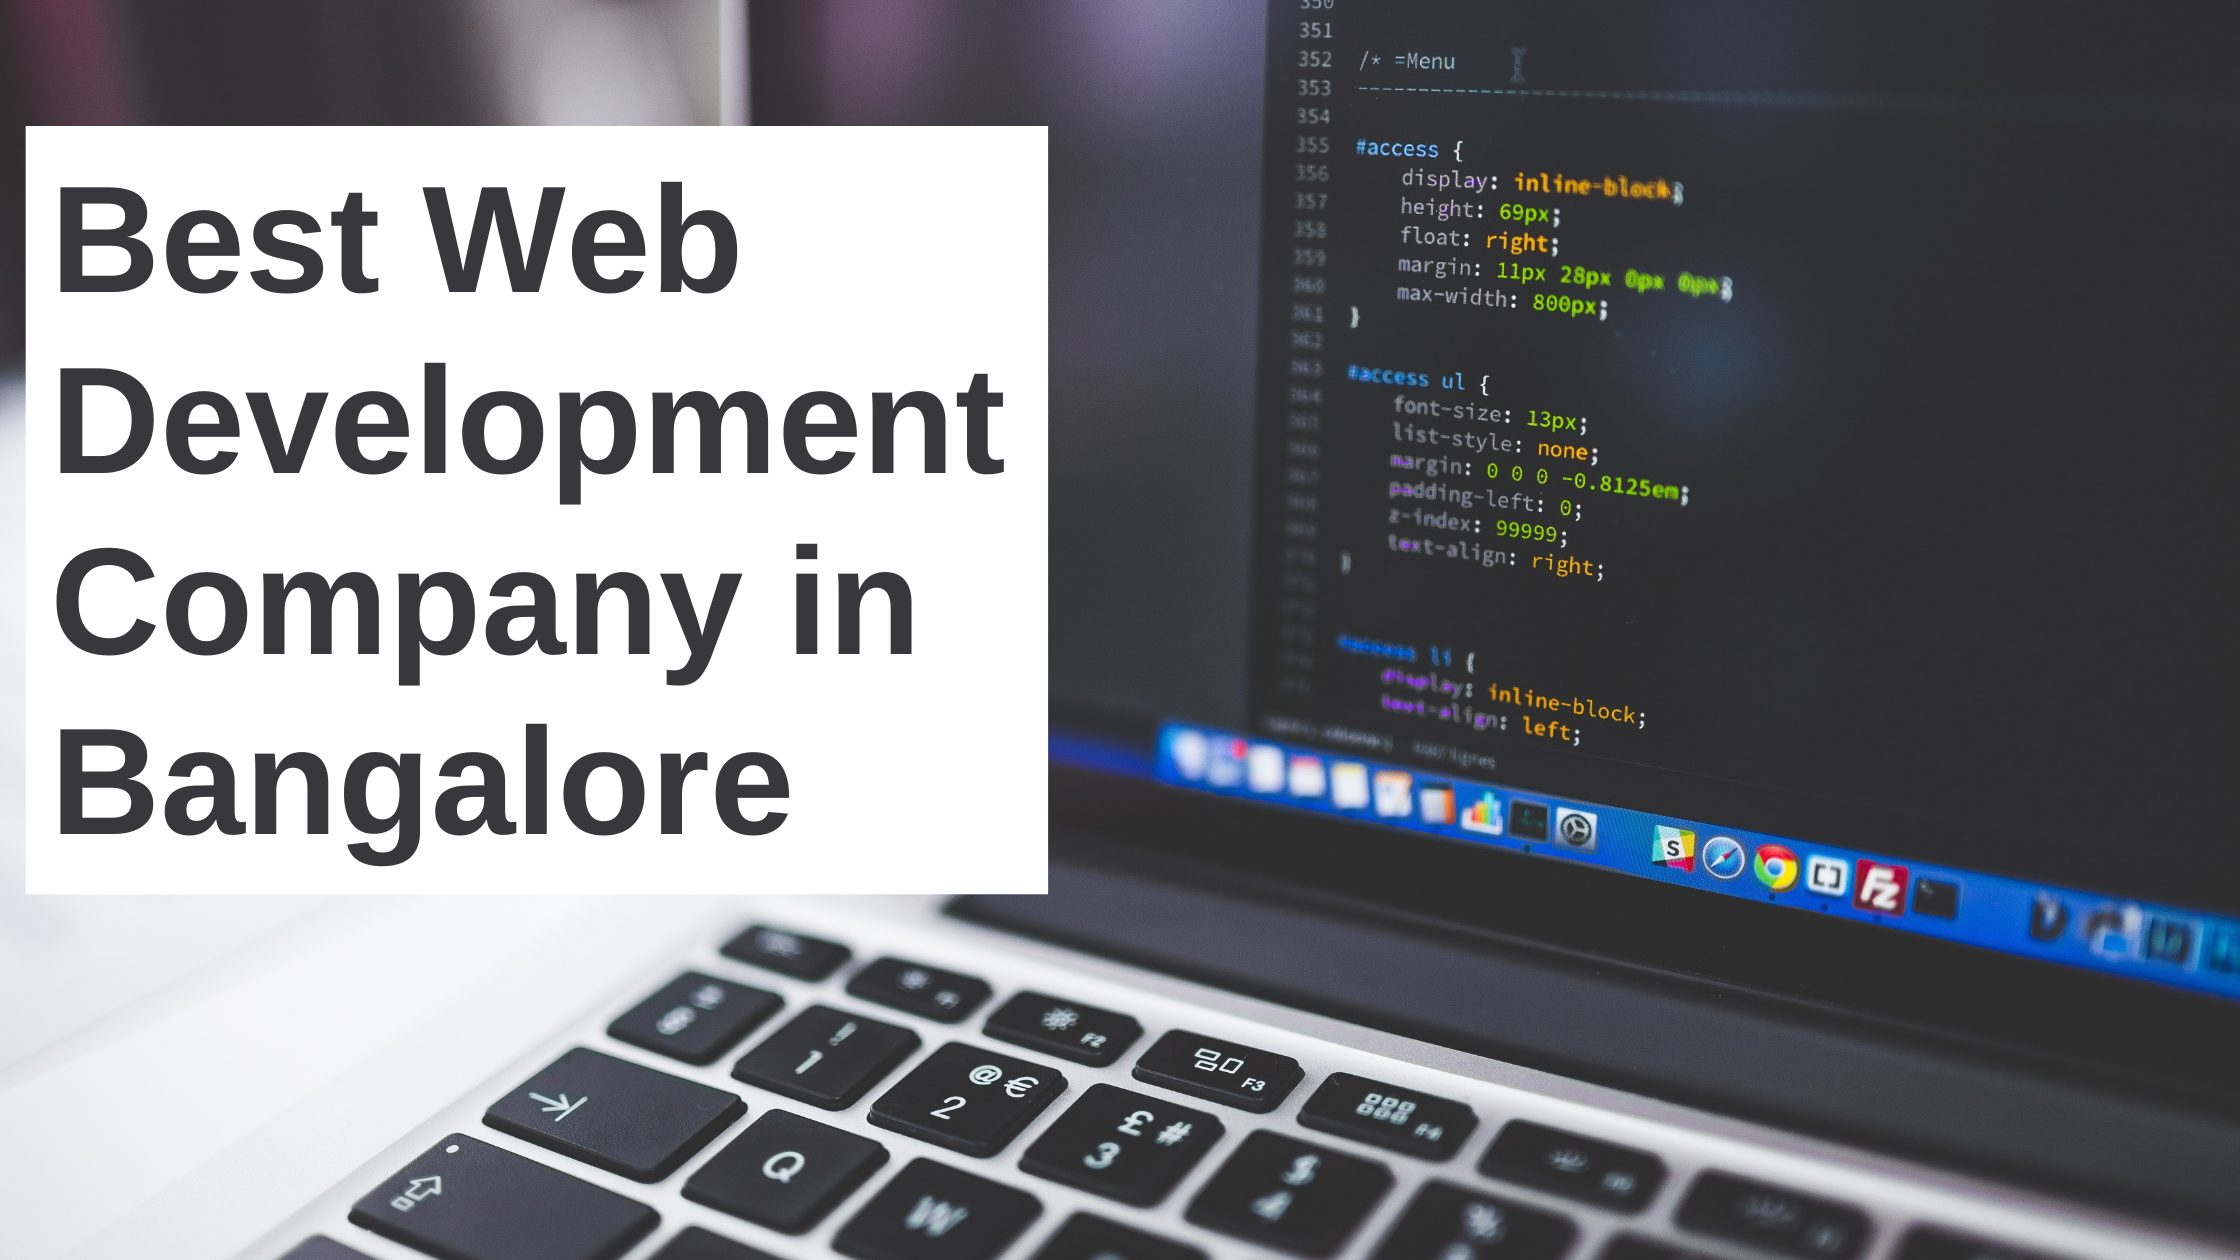 Best Web Development Company in Bangalore